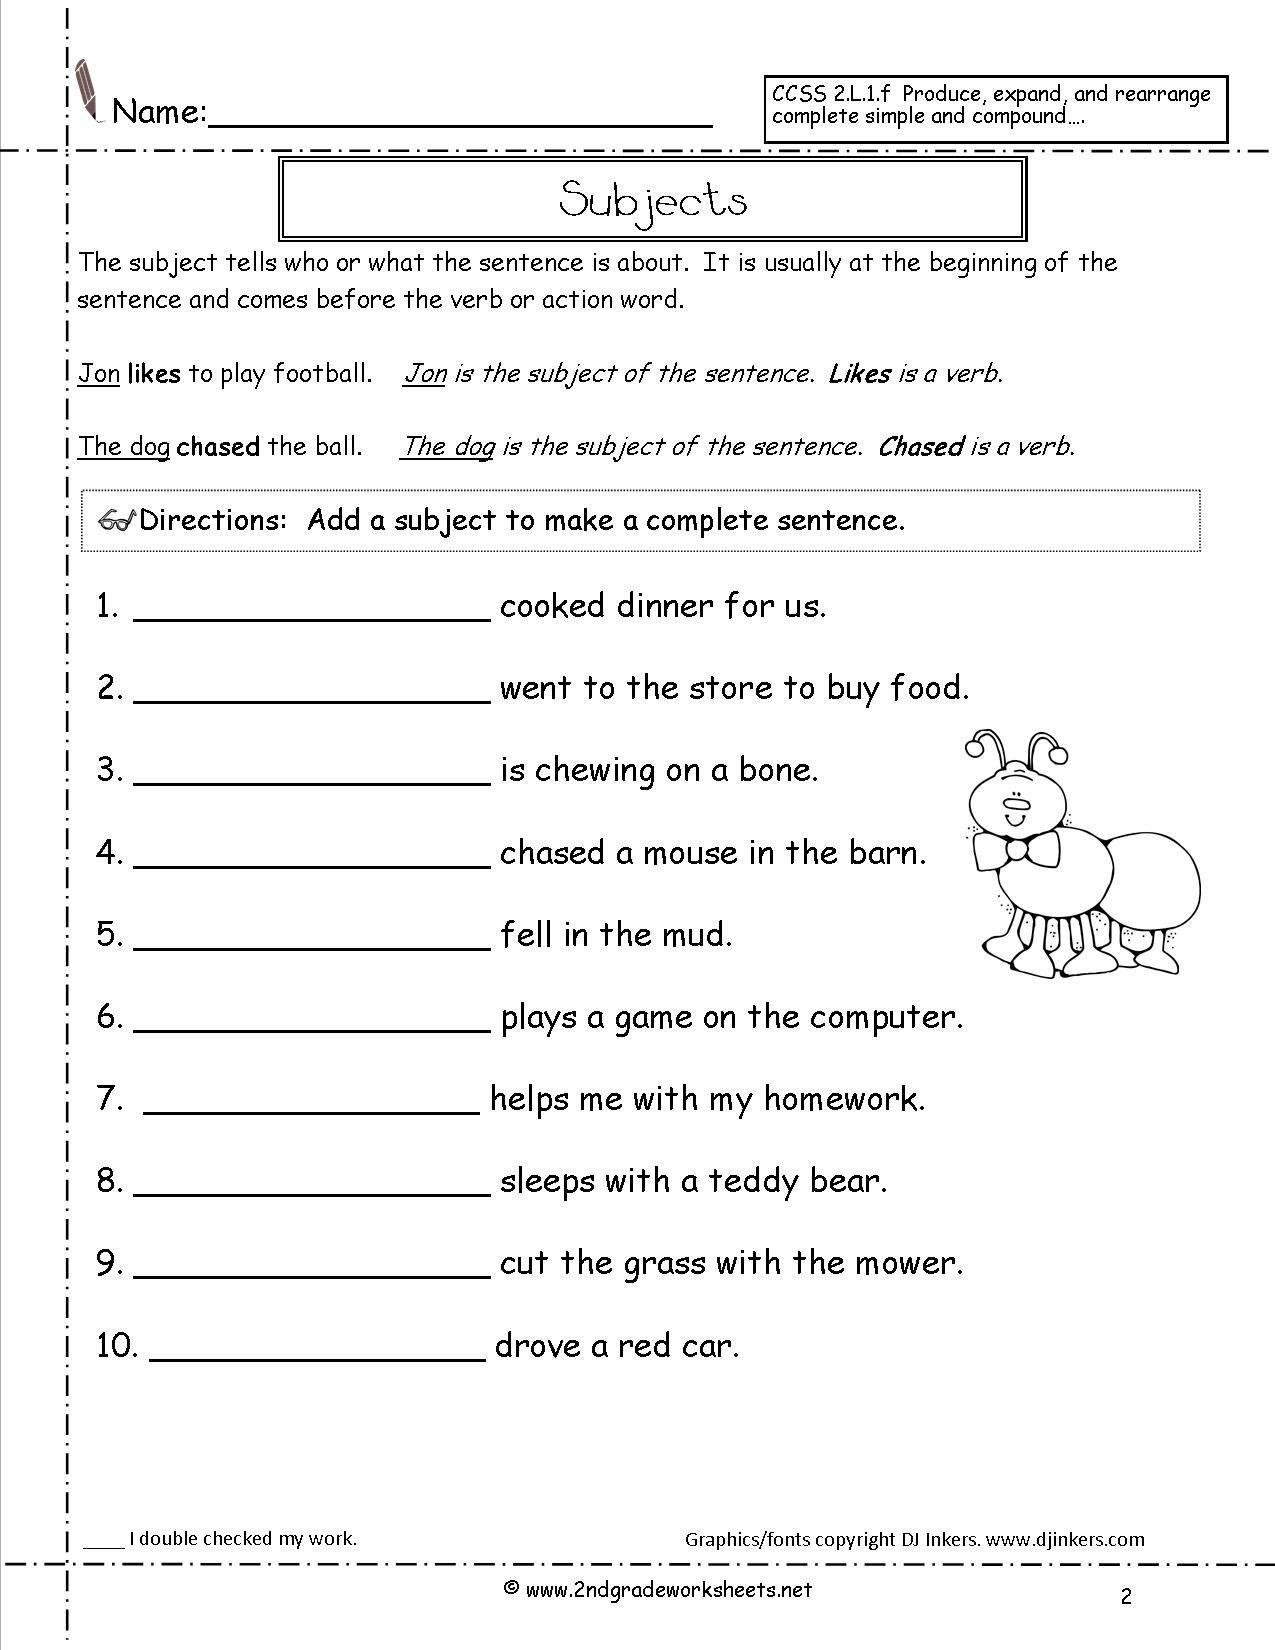 Topic Sentence Worksheet 2nd Grade Subjectworksheet2 1275—1650